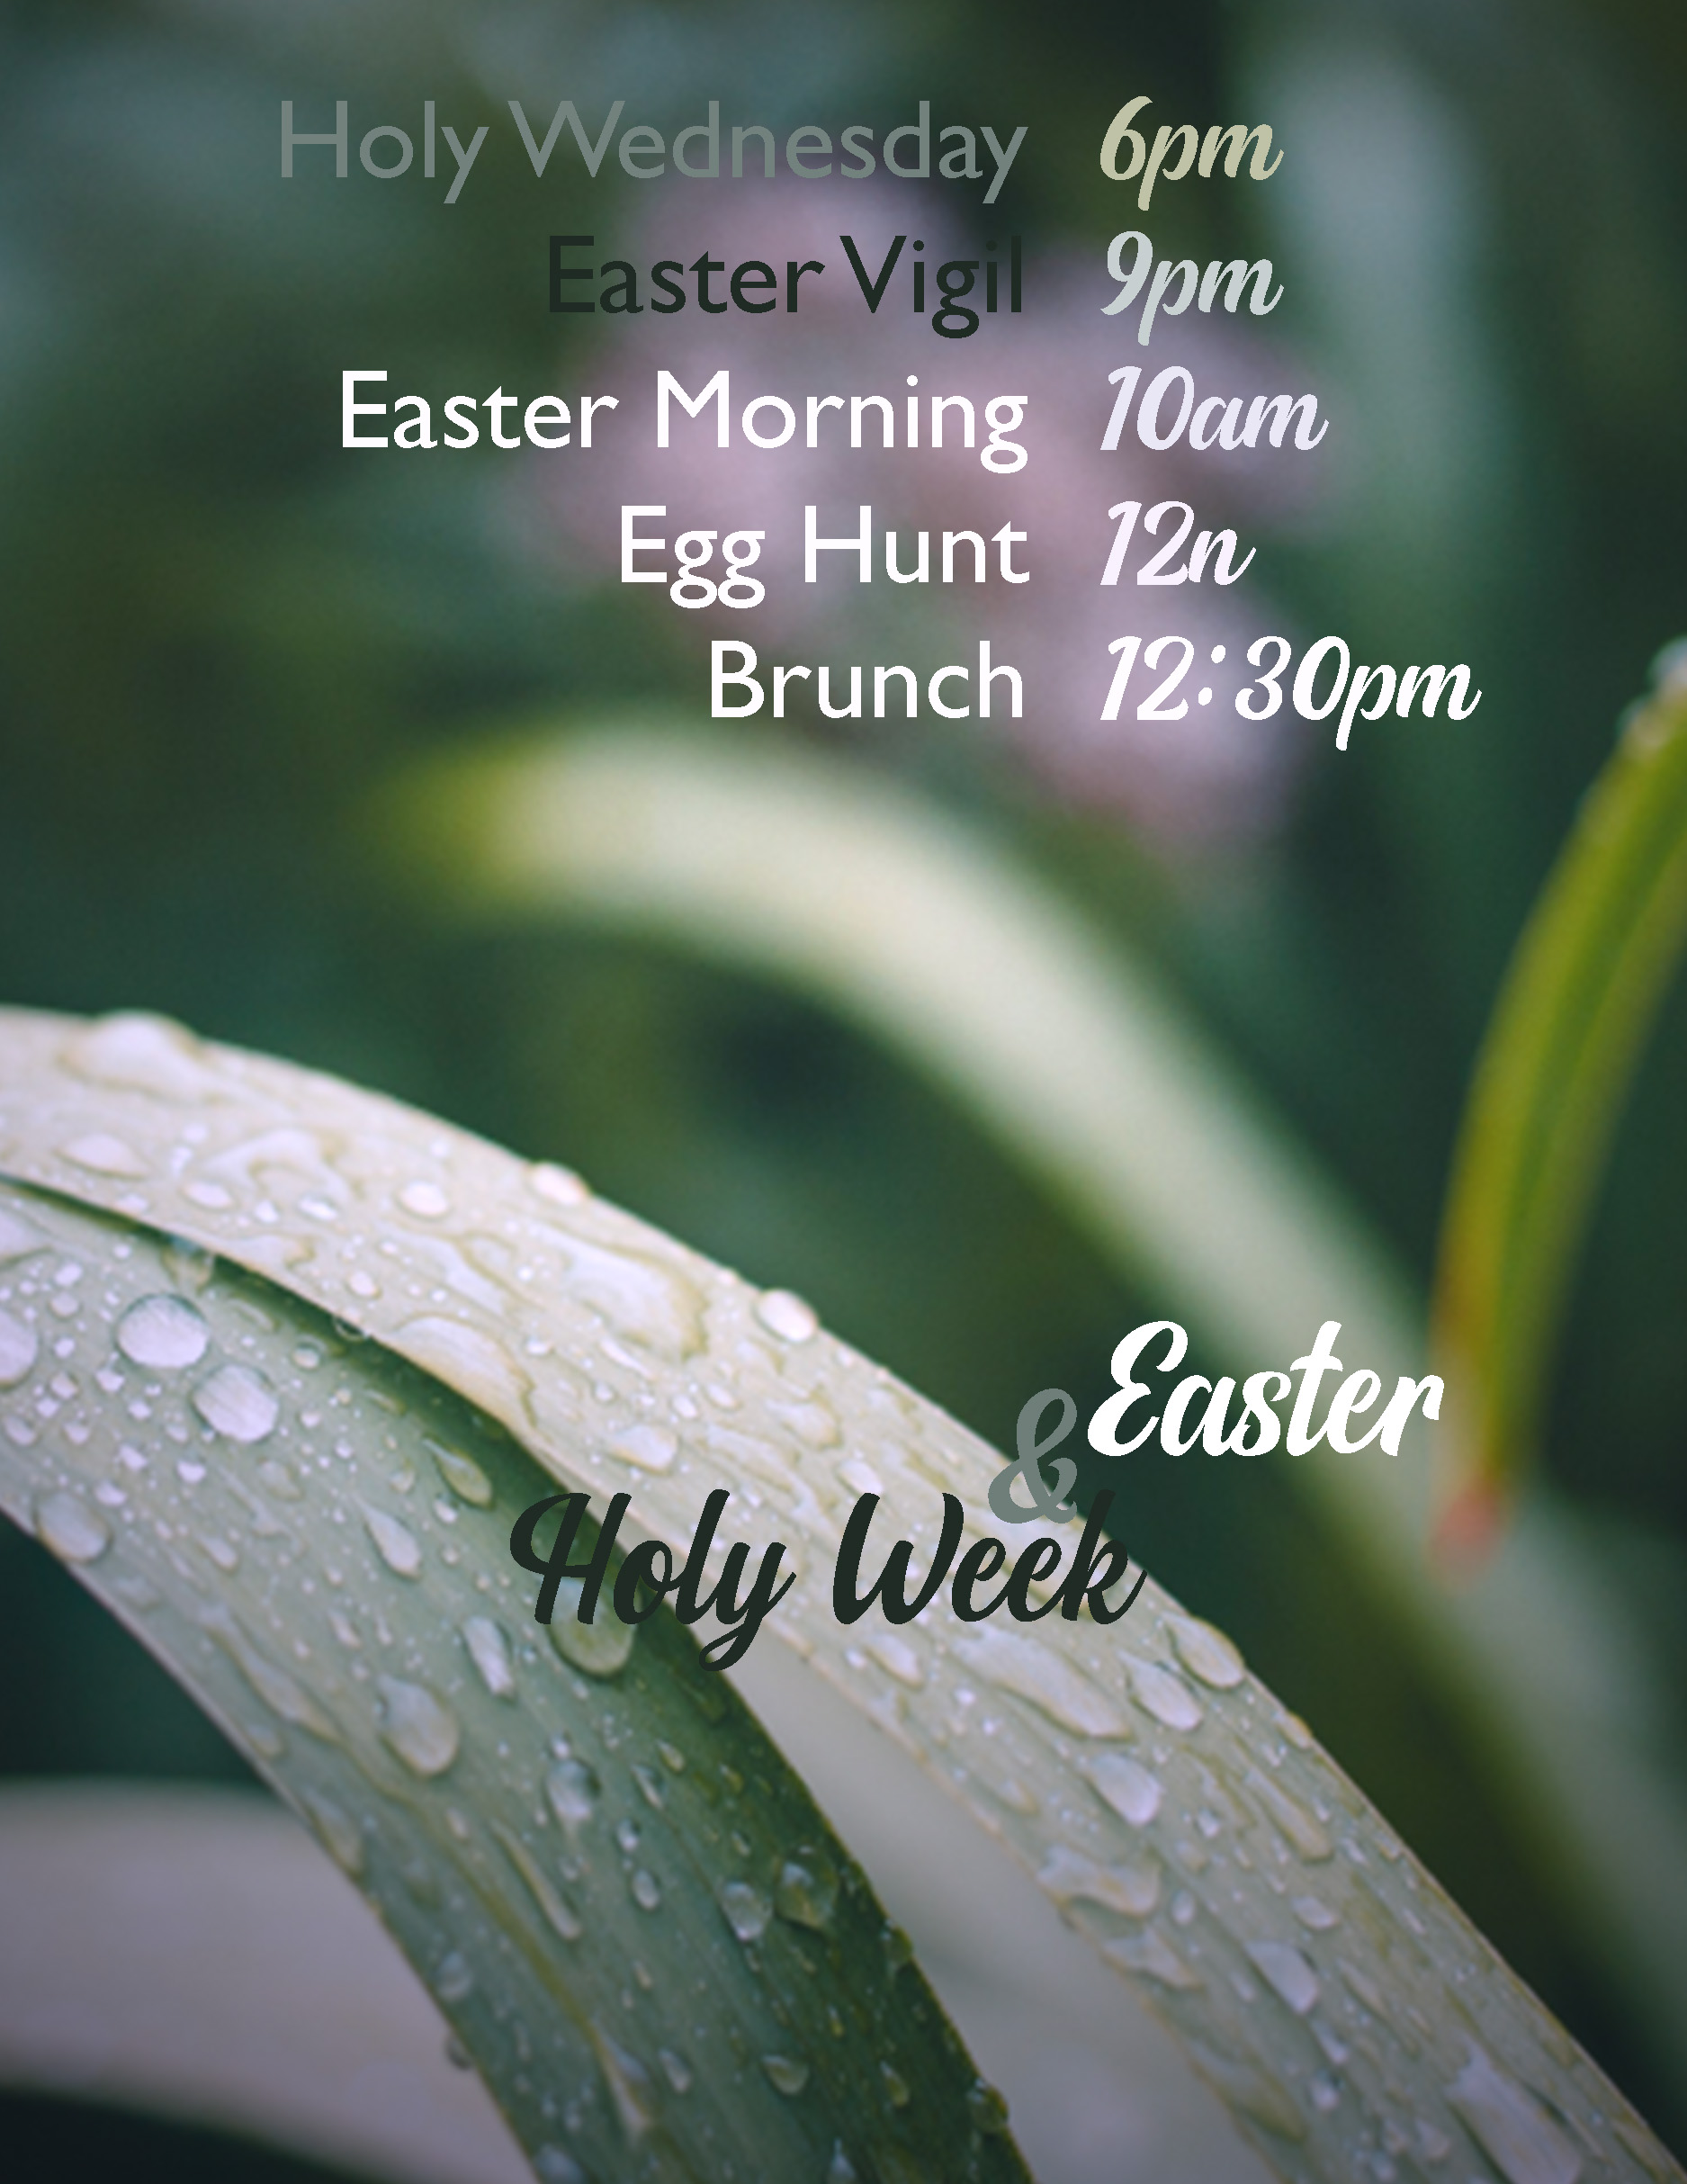 Holy Week and Easter - website